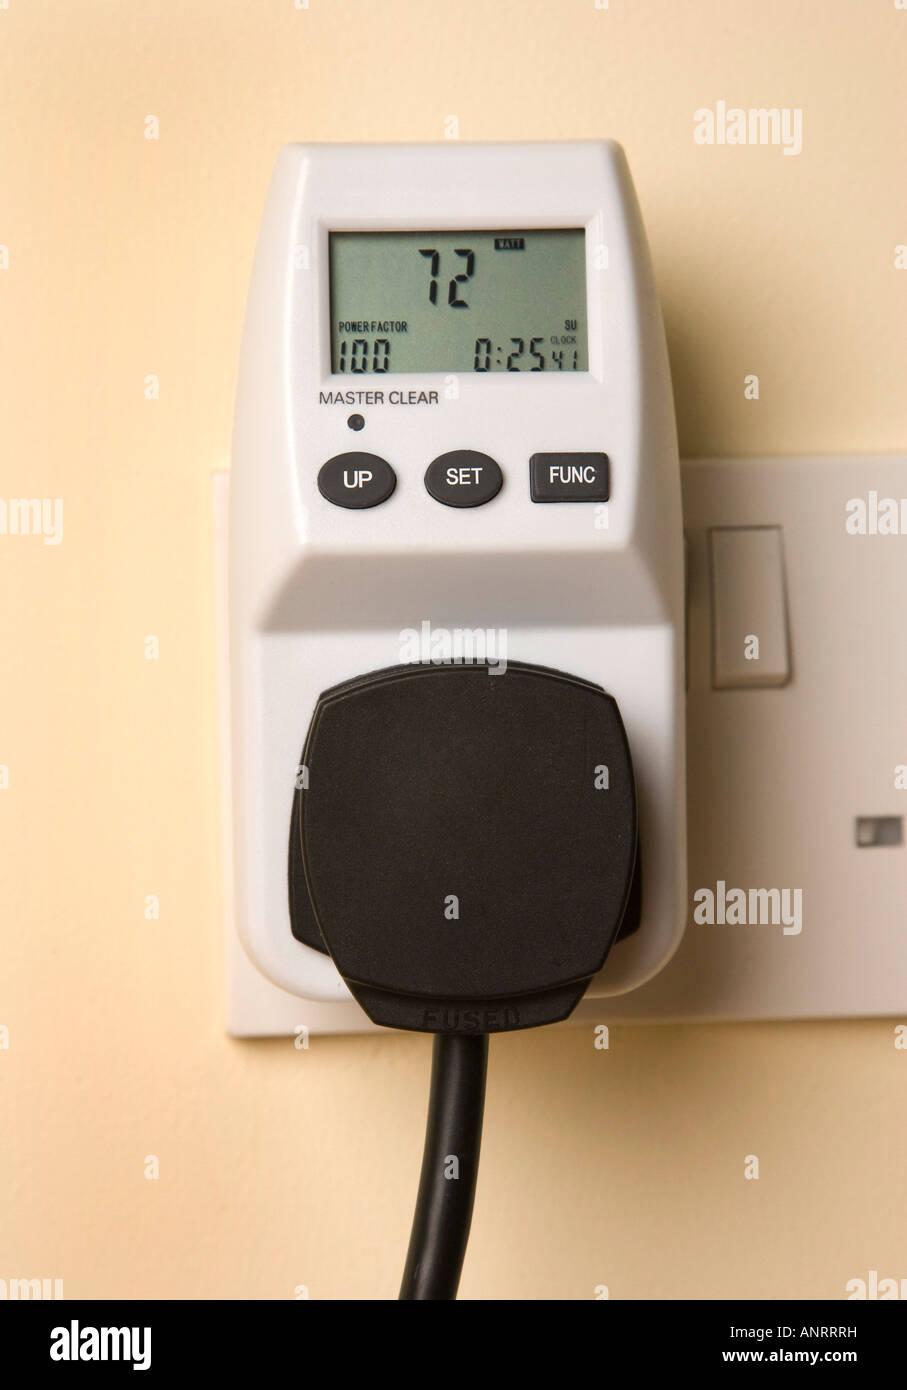 electronic device for measuring how much electricity / energy is consumed by electrical appliances - Stock Image